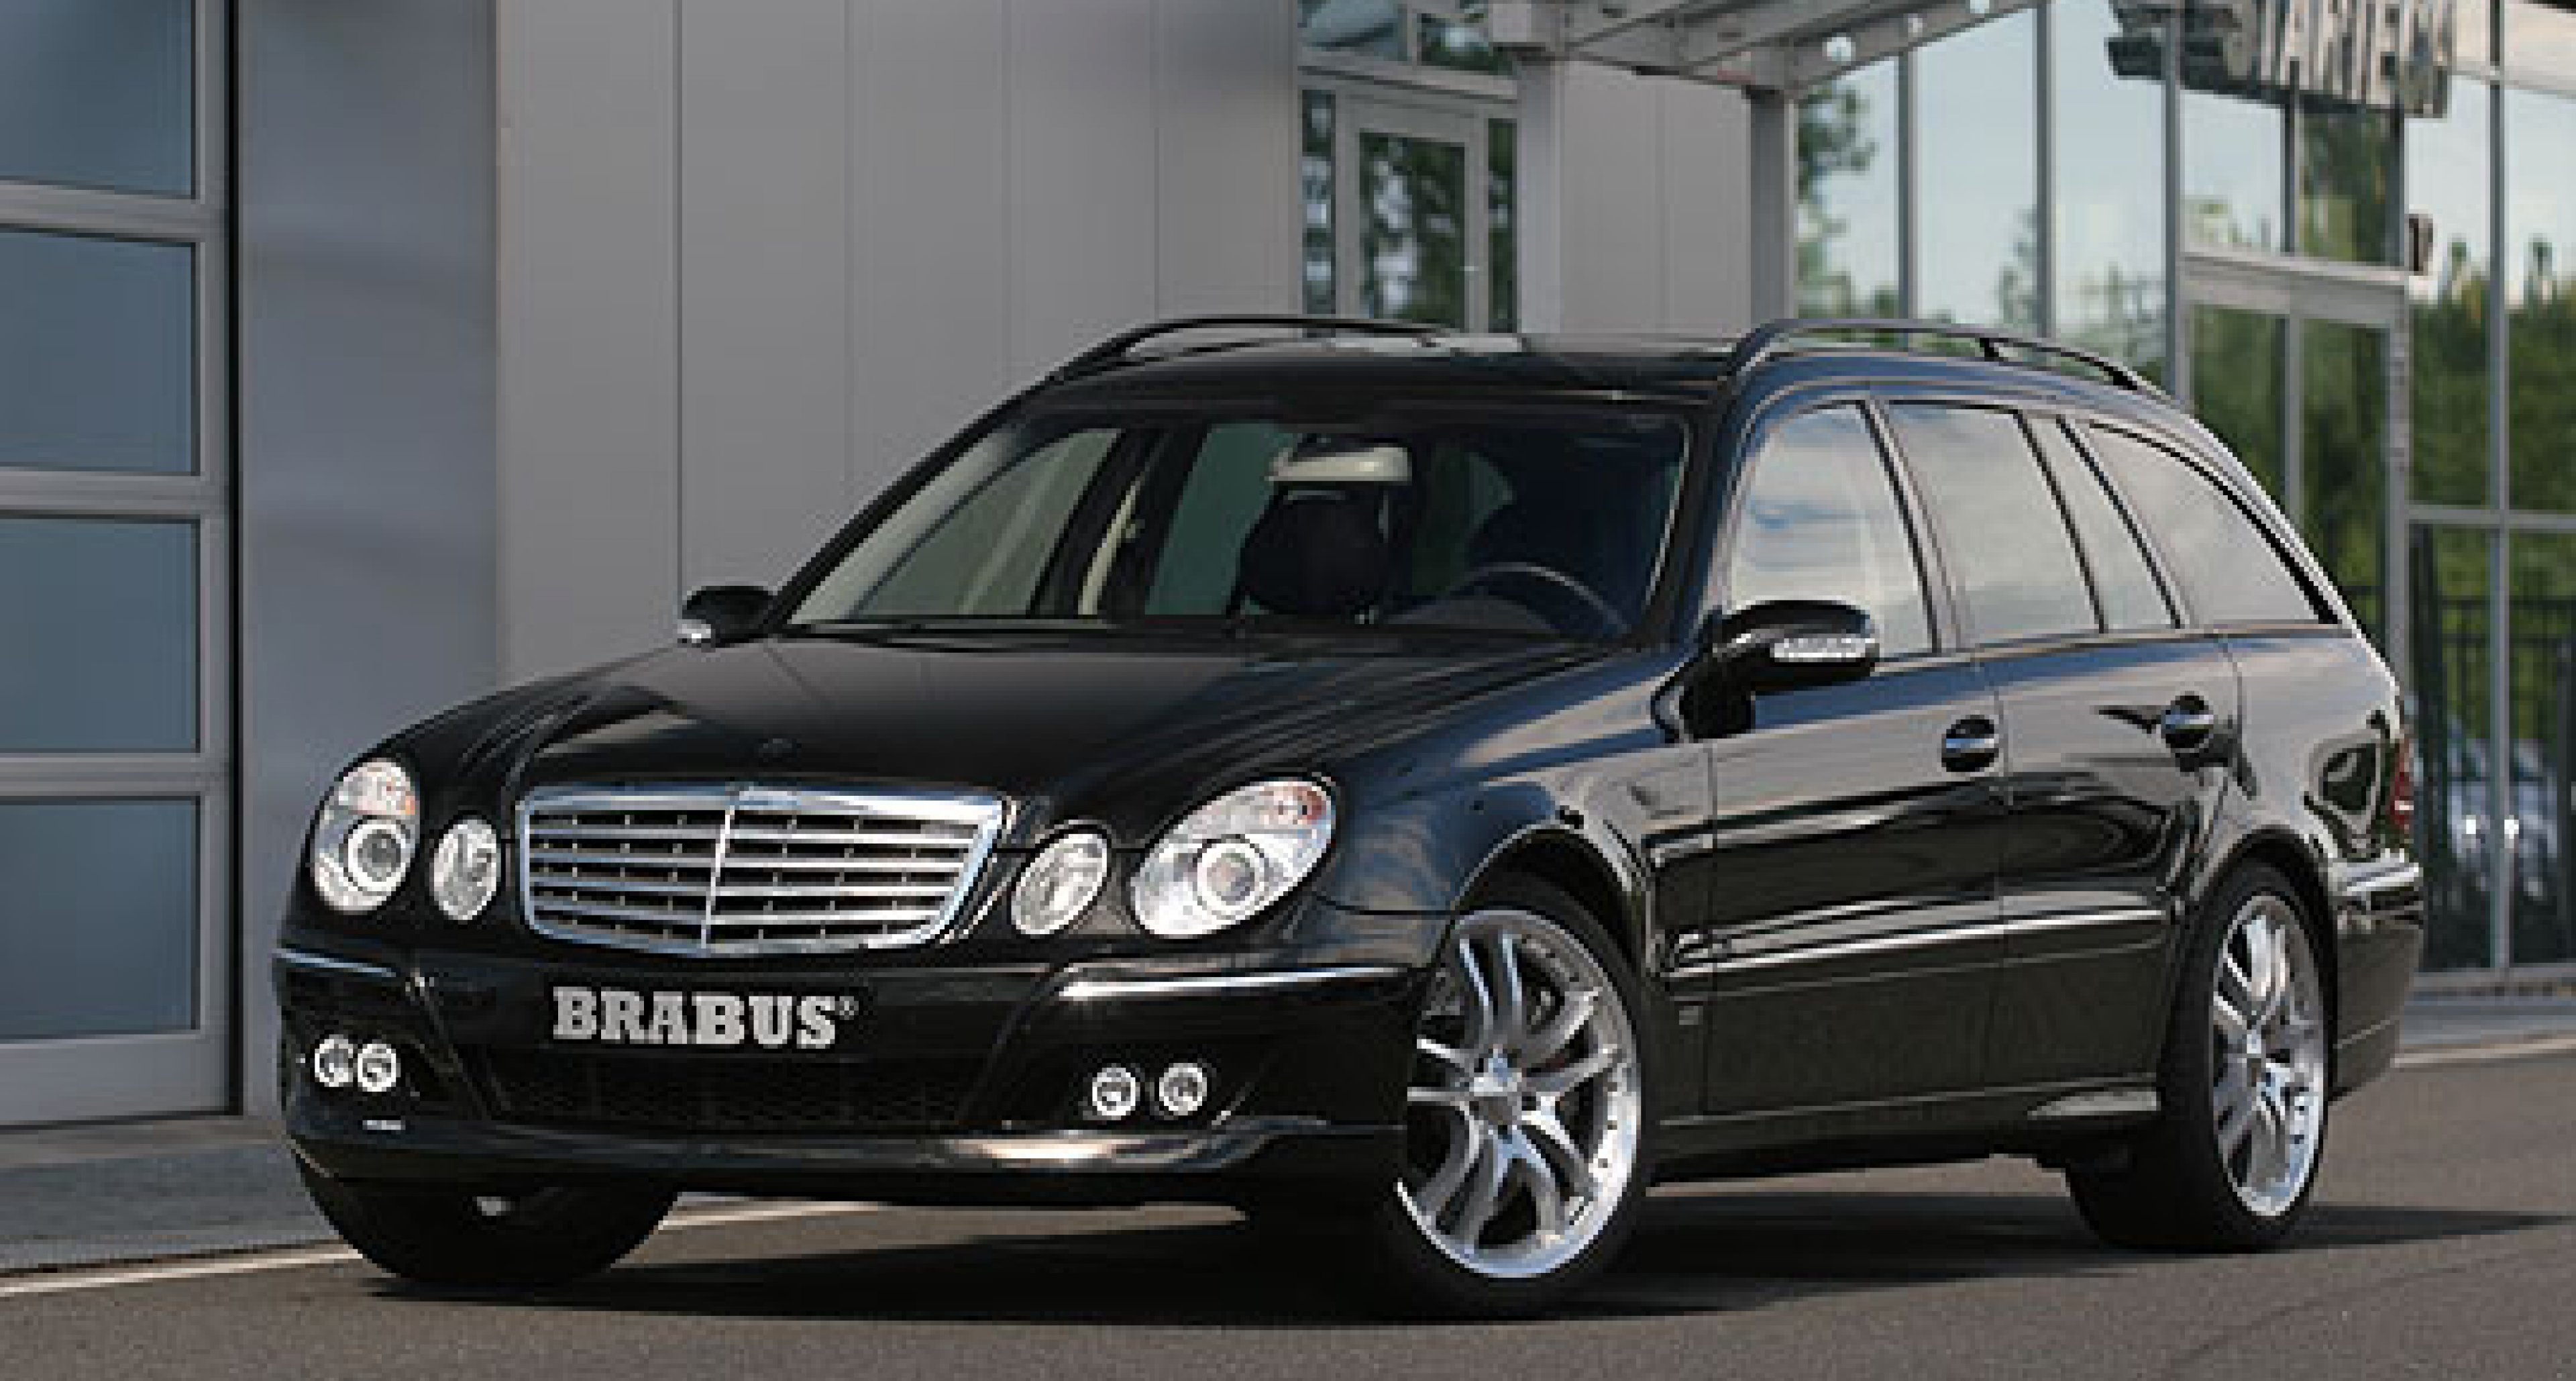 BRABUS tuning for the updated  E-Class